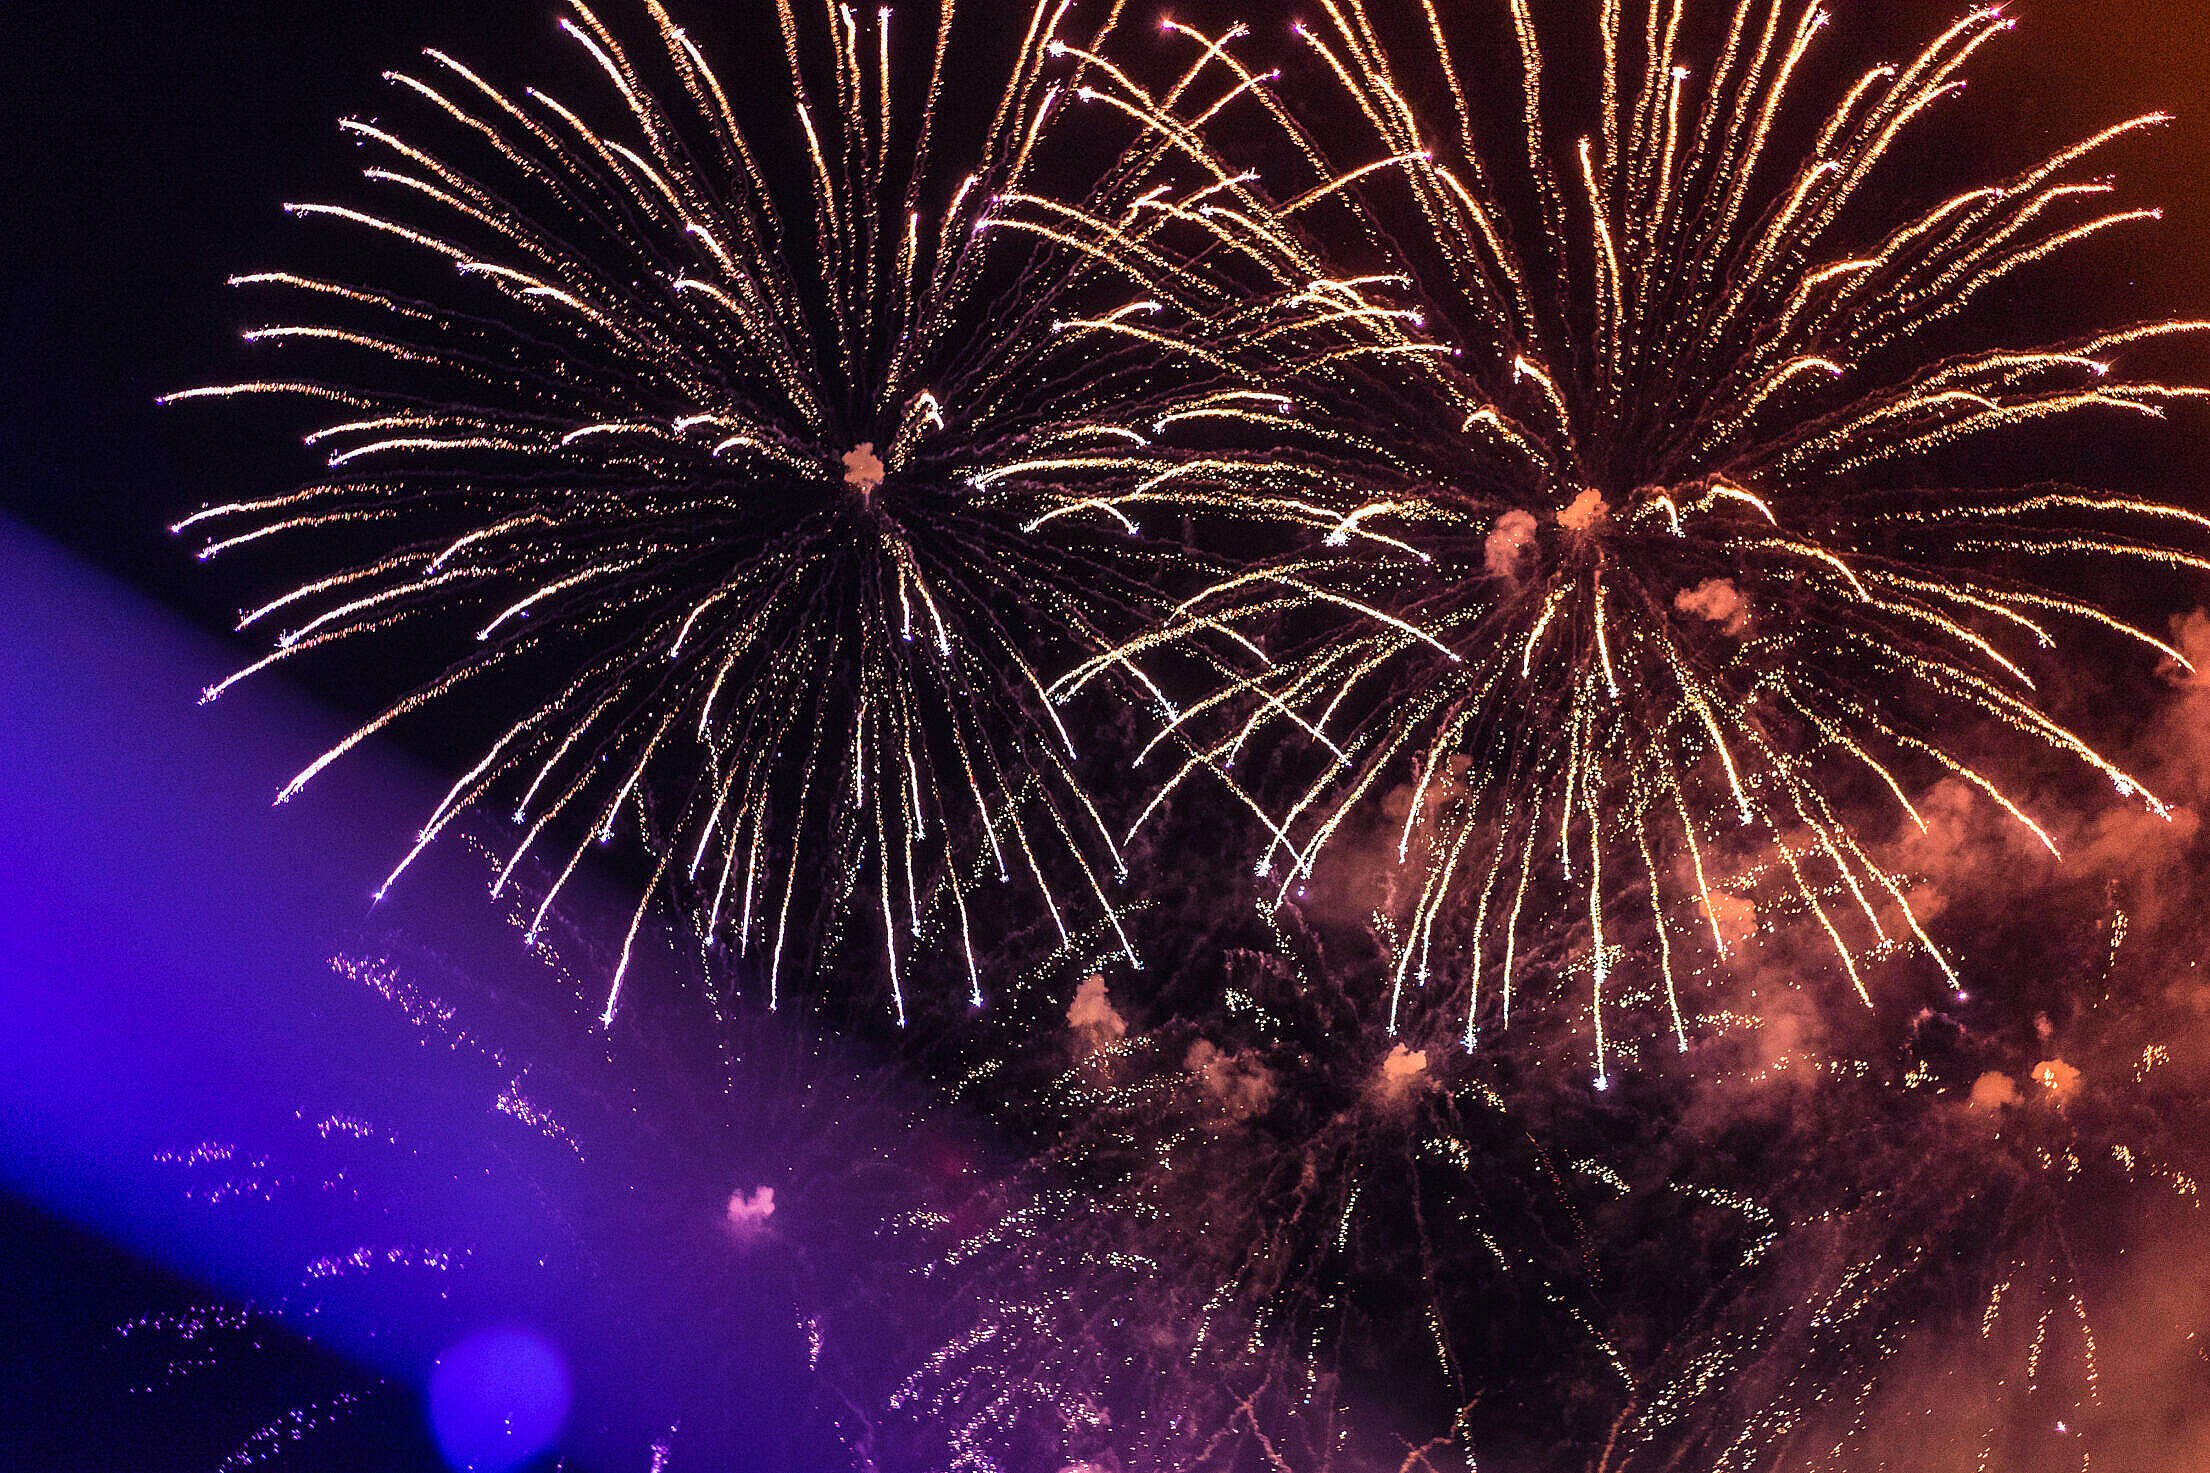 Huge Colorful Fireworks Pyrotechnics Against Black Night Sky Free Stock Photo